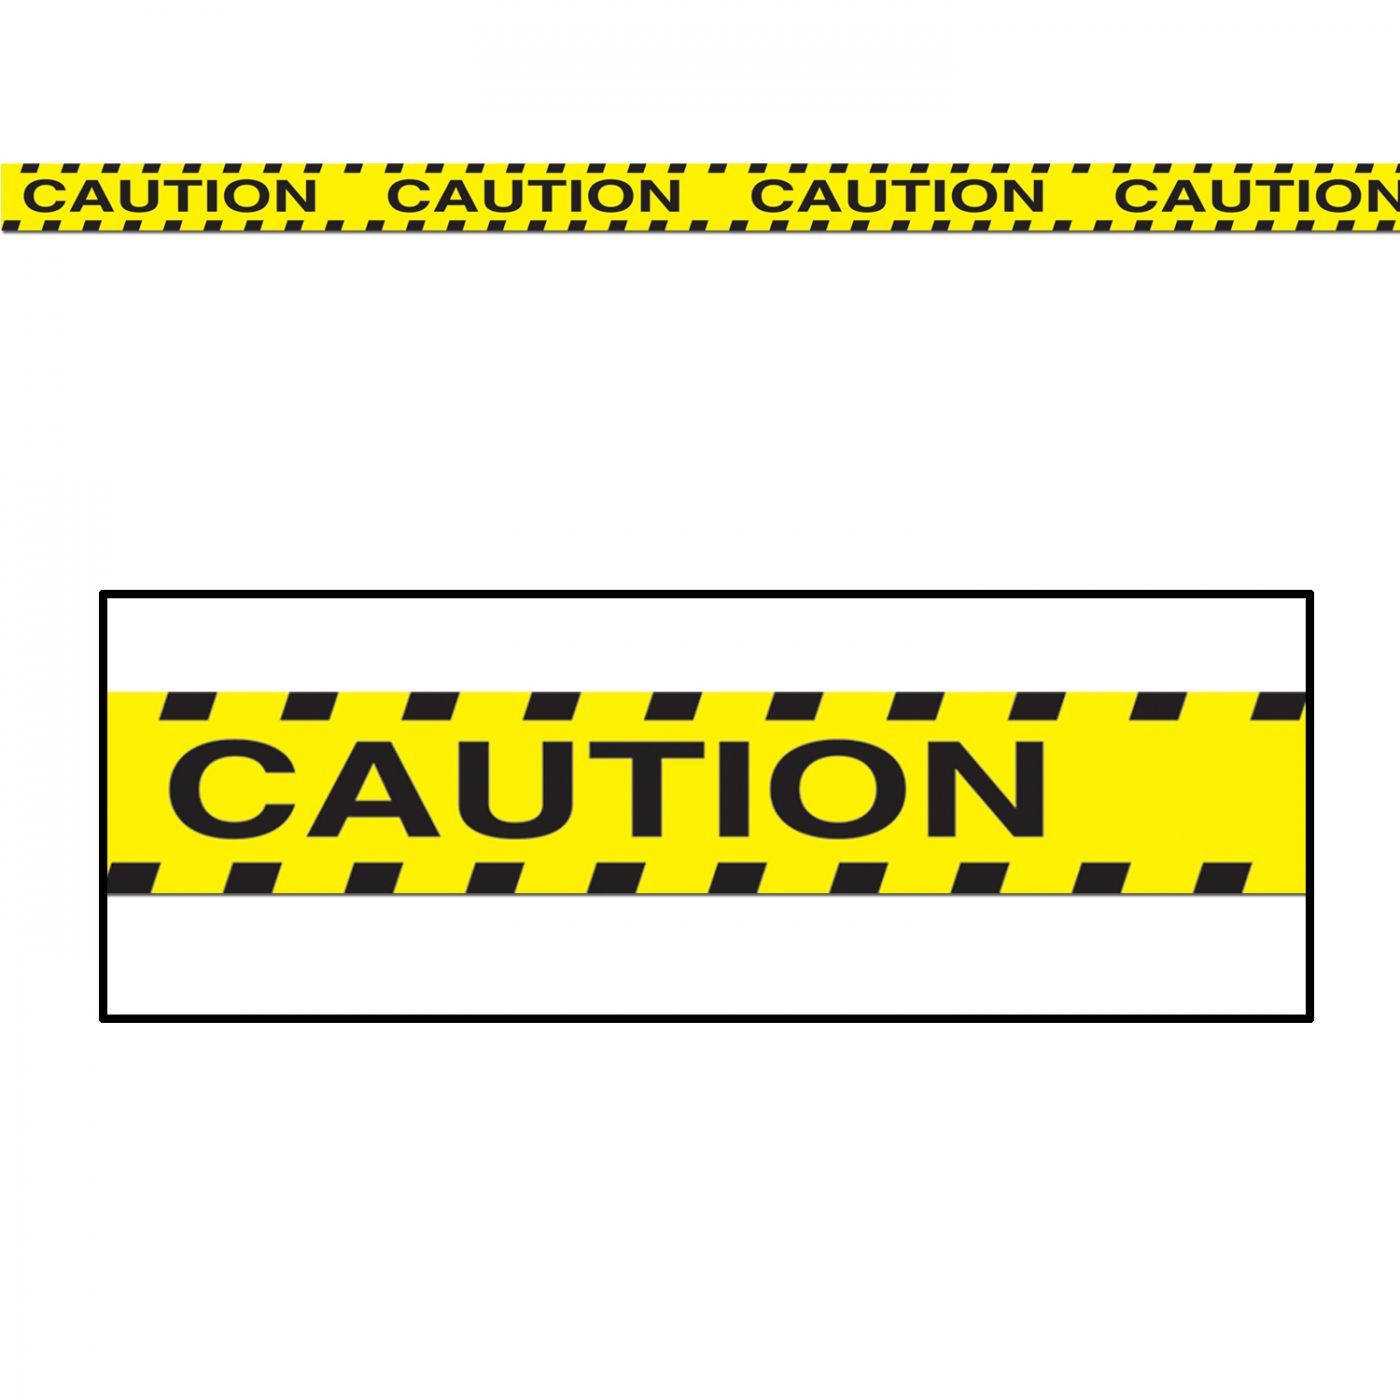 Caution Party Tape image